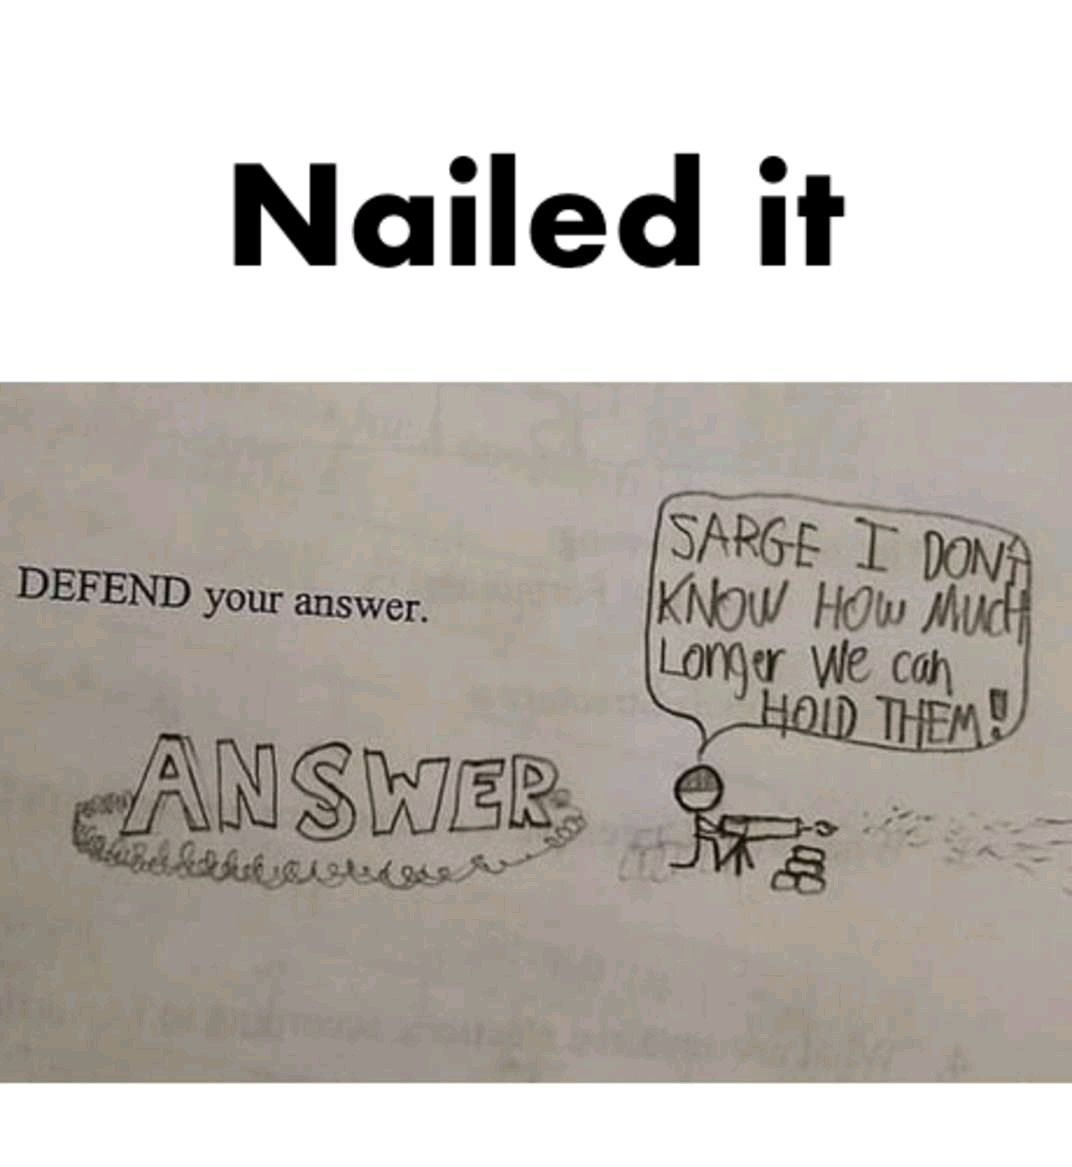 This kid nailed it memes Funny kid answers, Funniest